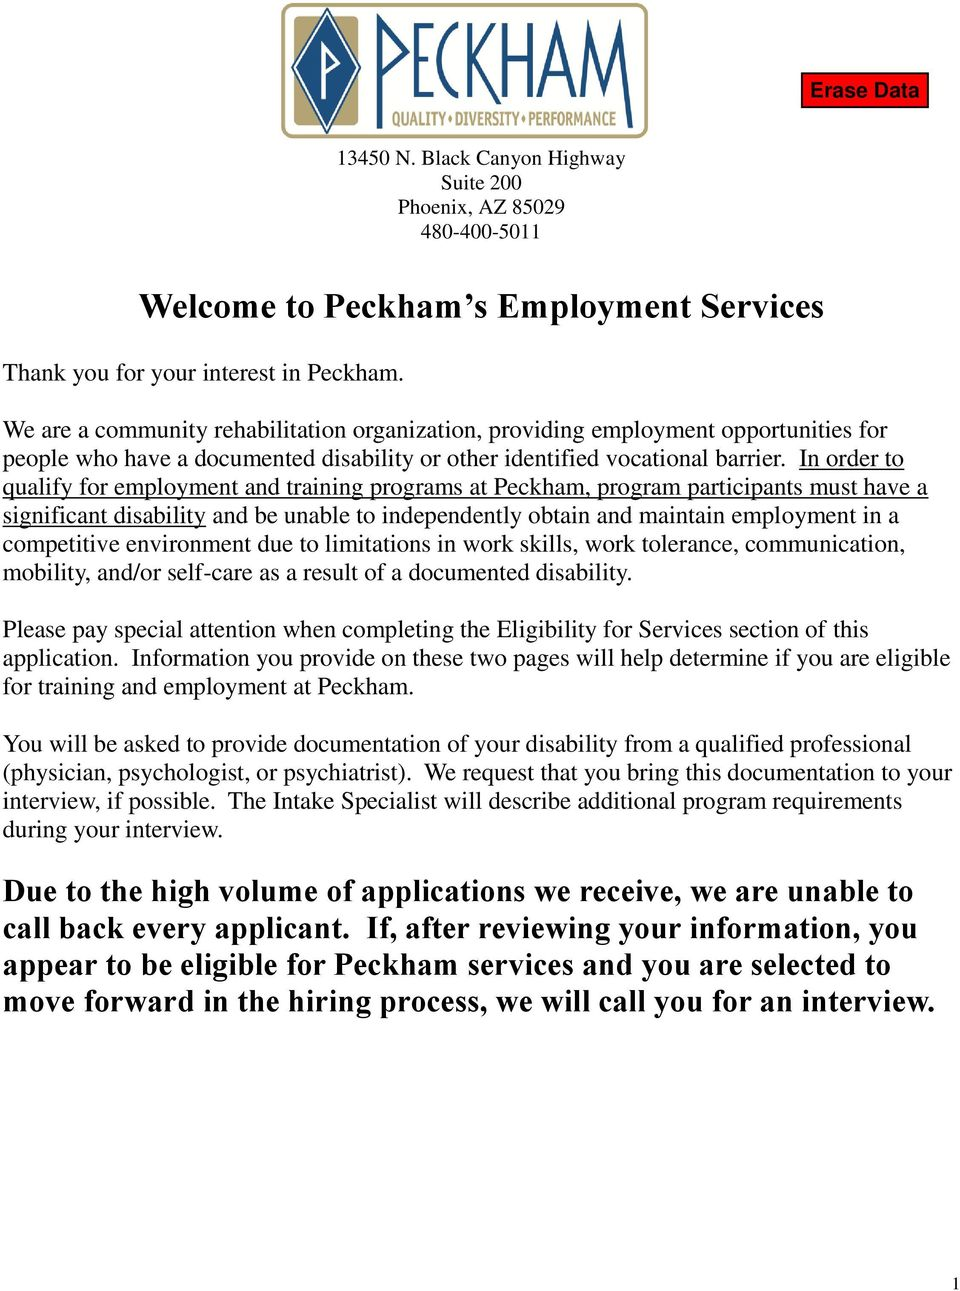 In order to qualify for employment and training programs at Peckham, program participants must have a significant disability and be unable to independently obtain and maintain employment in a